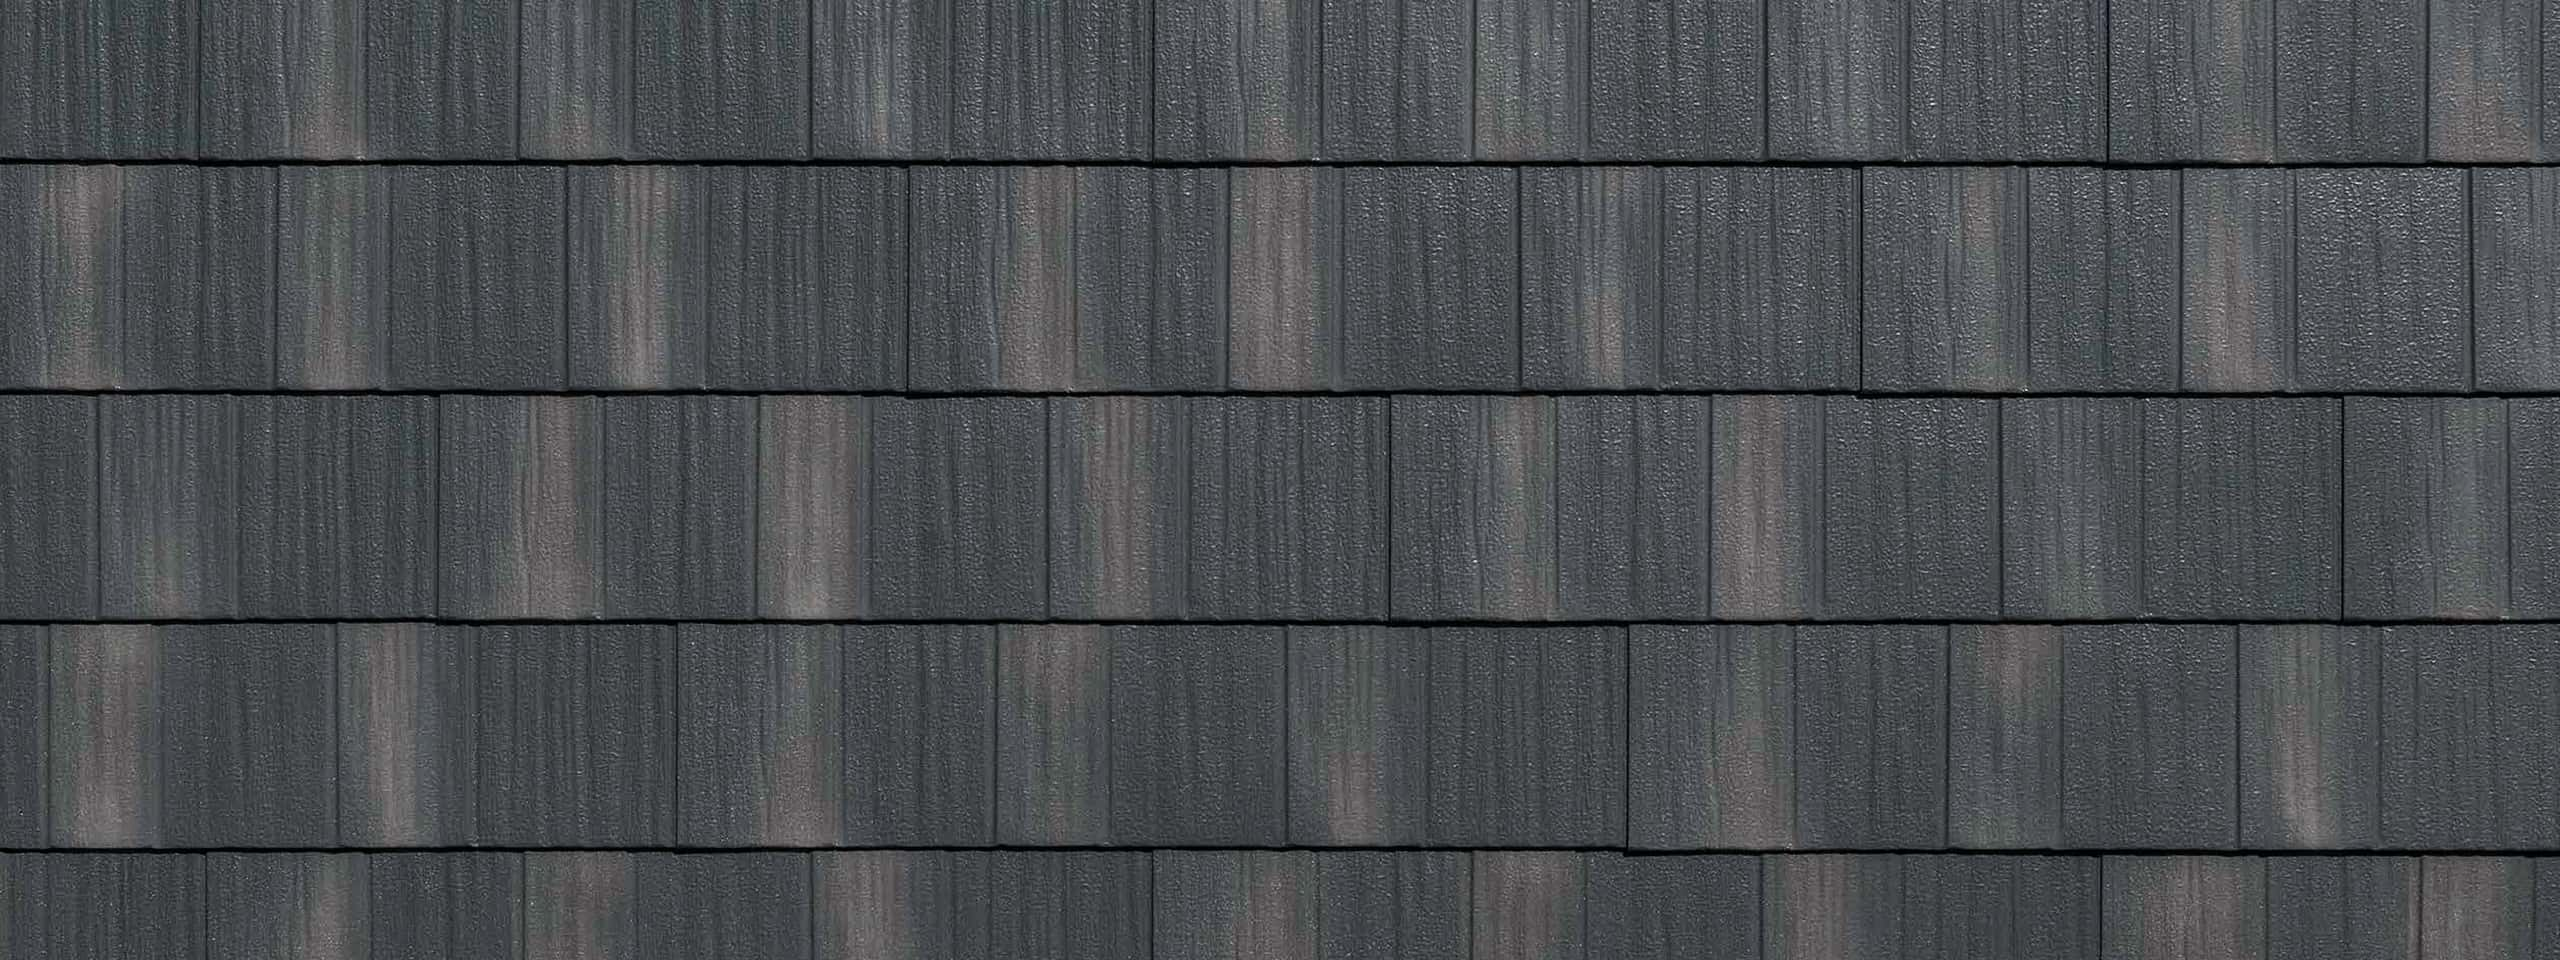 EDCO Infiniti® Textured Steel Shake Granite Gray Swatch